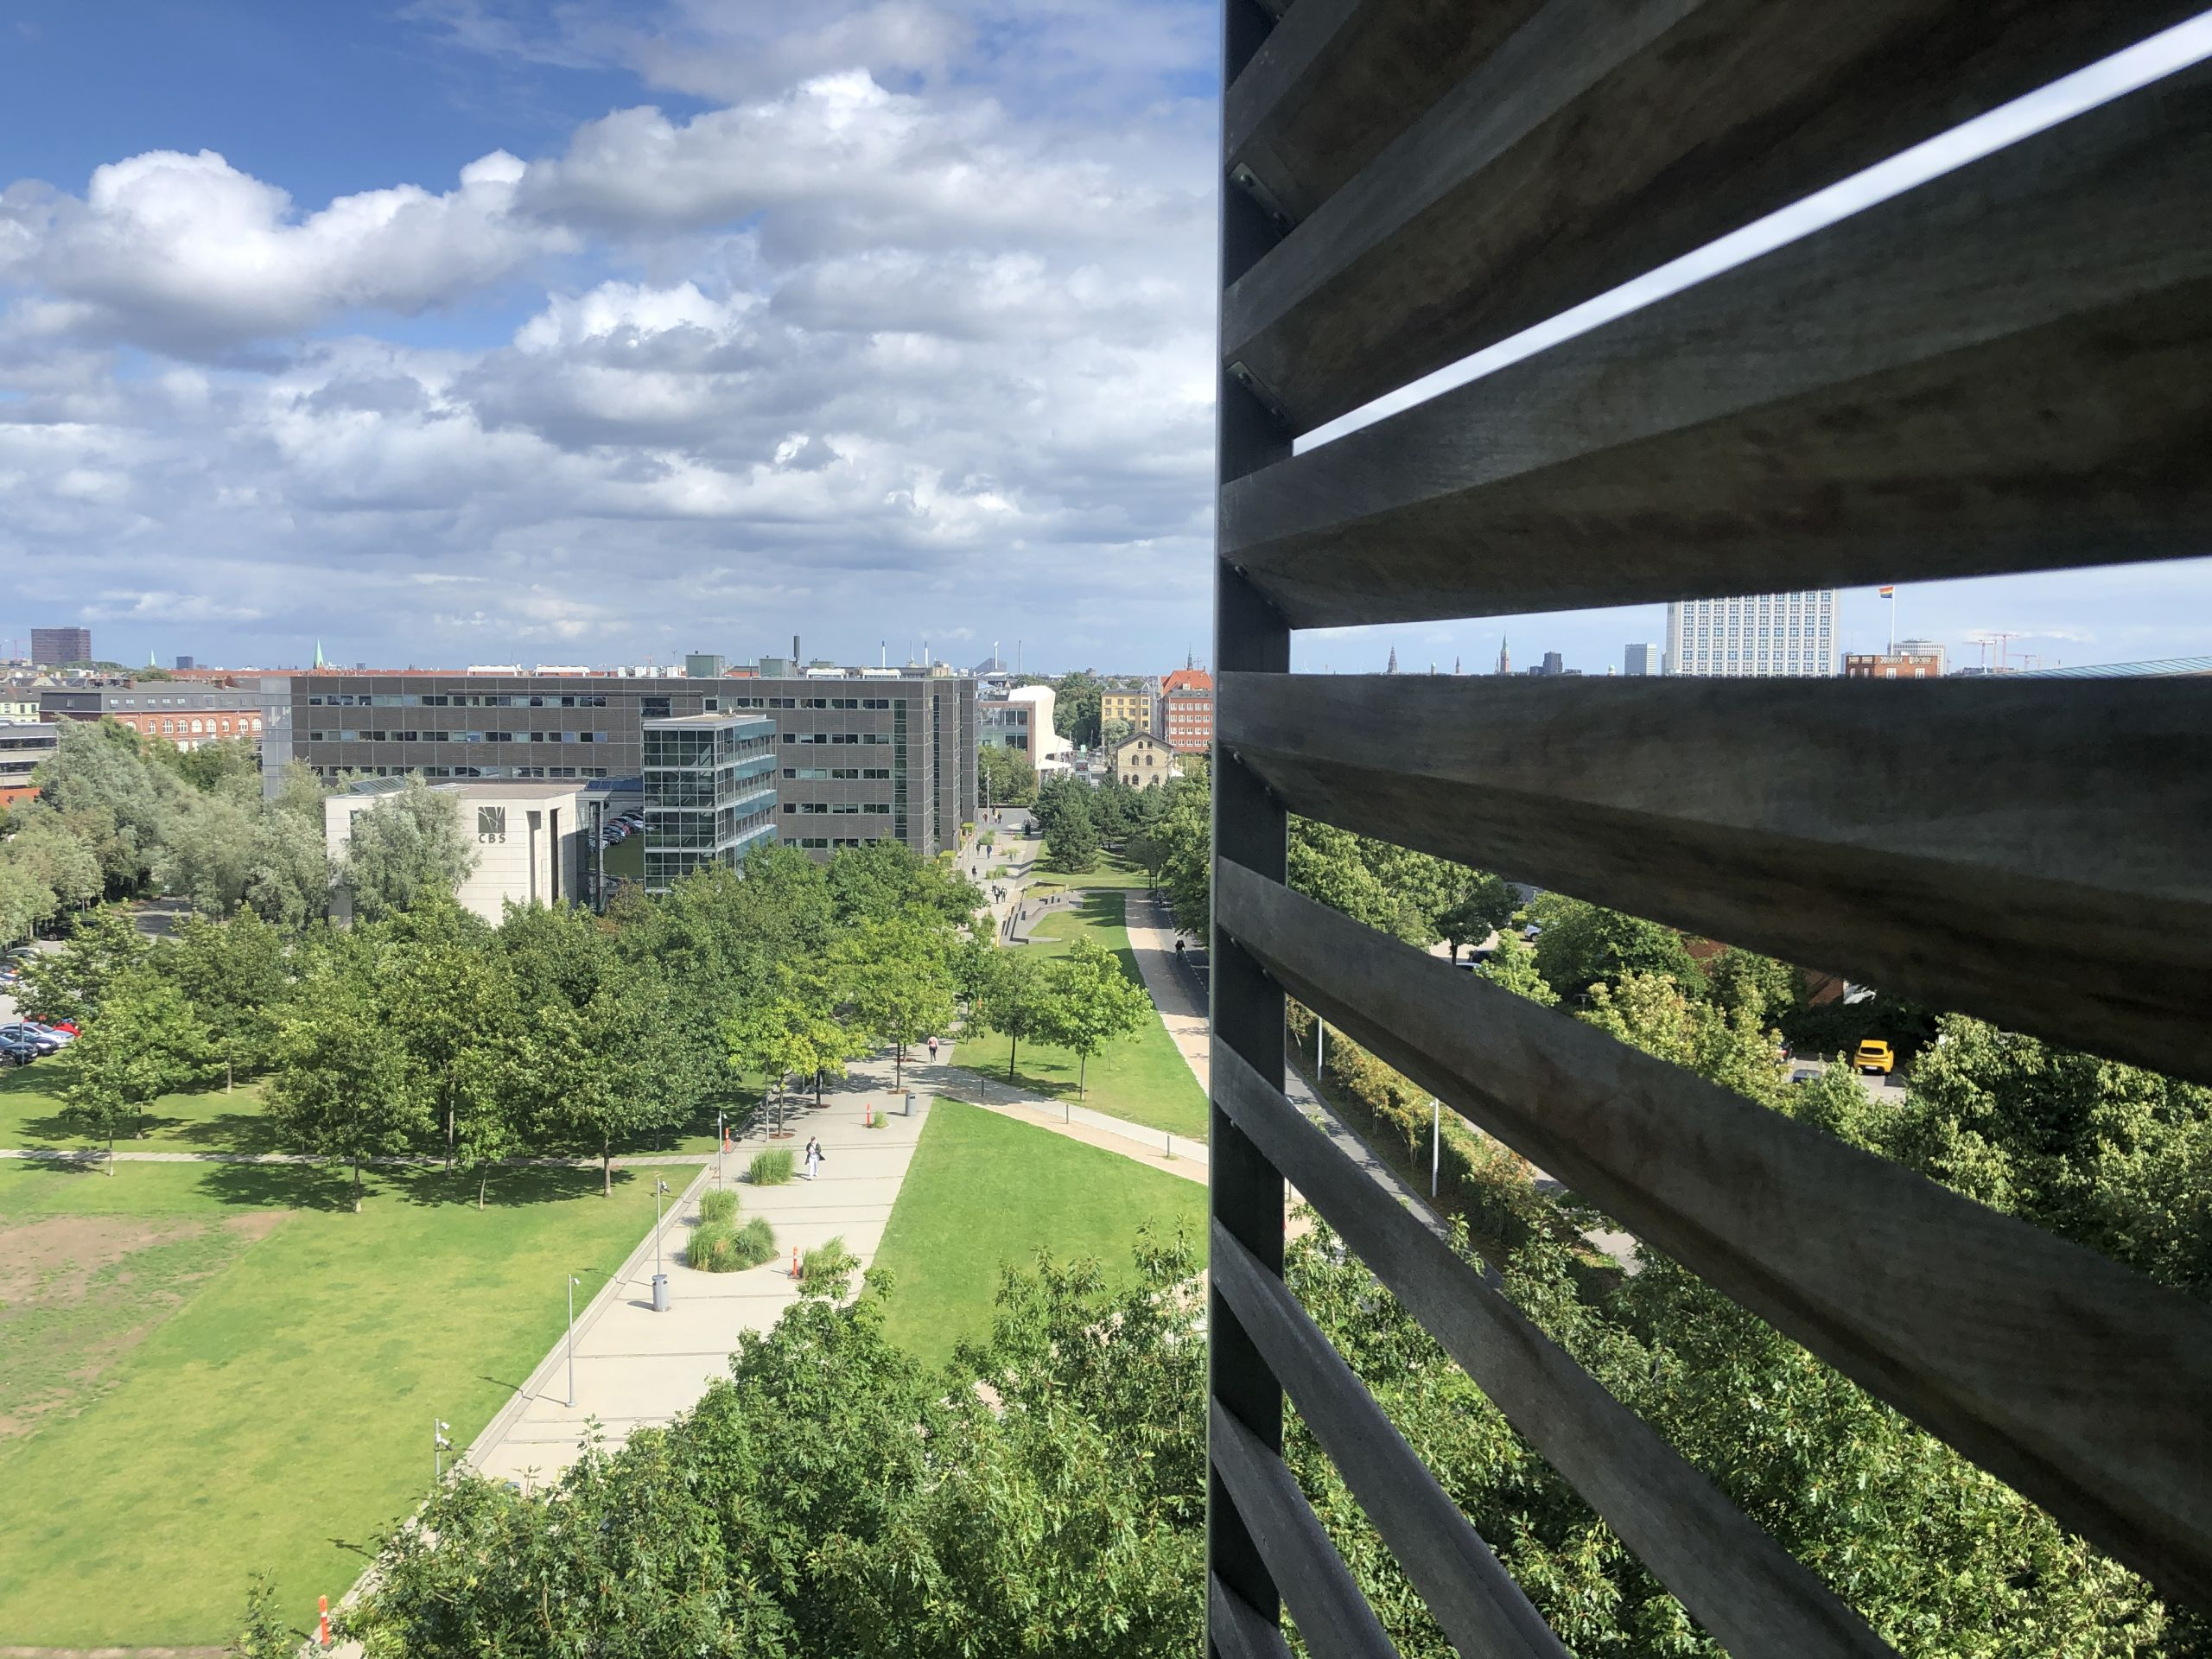 View from top floor over a park